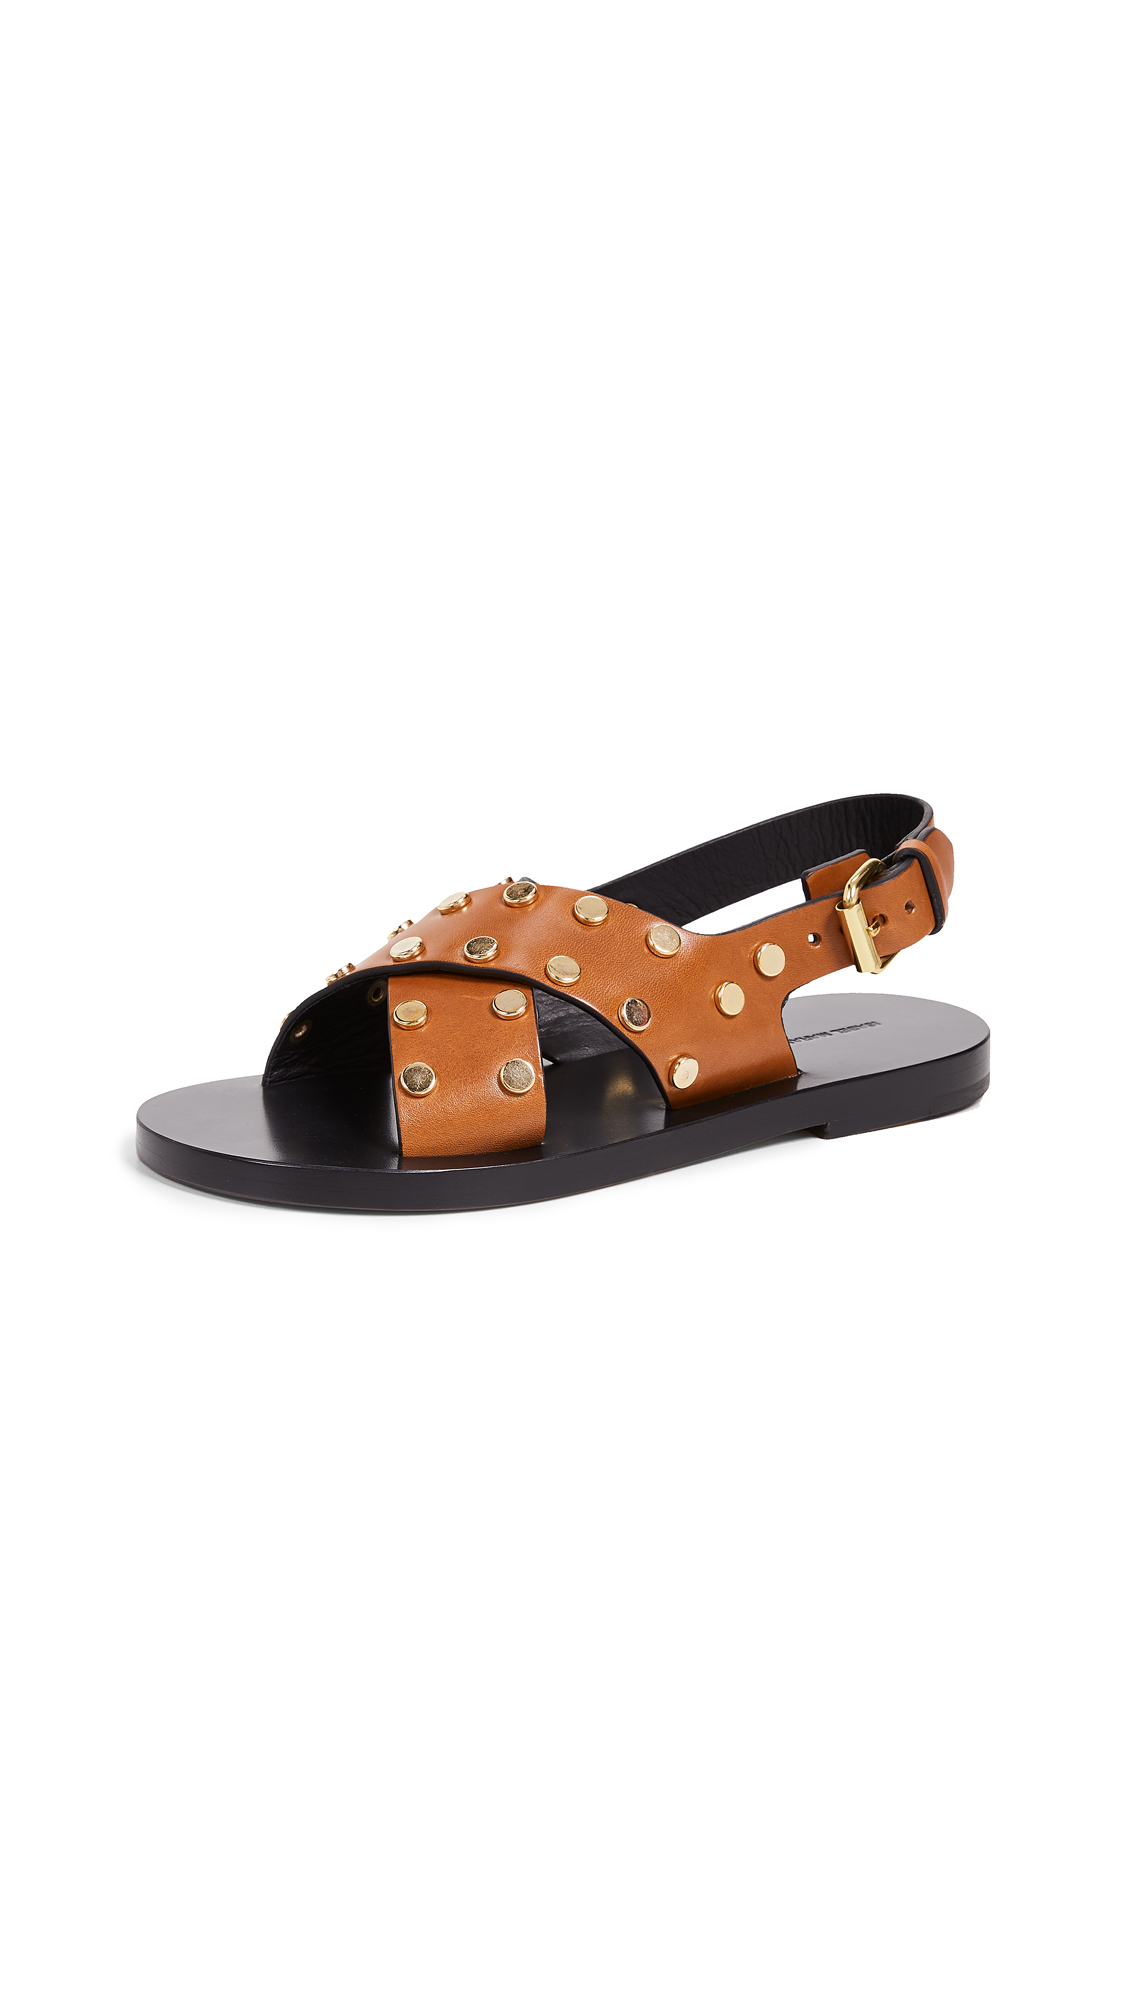 Isabel Marant Jane Sandals - Cognac